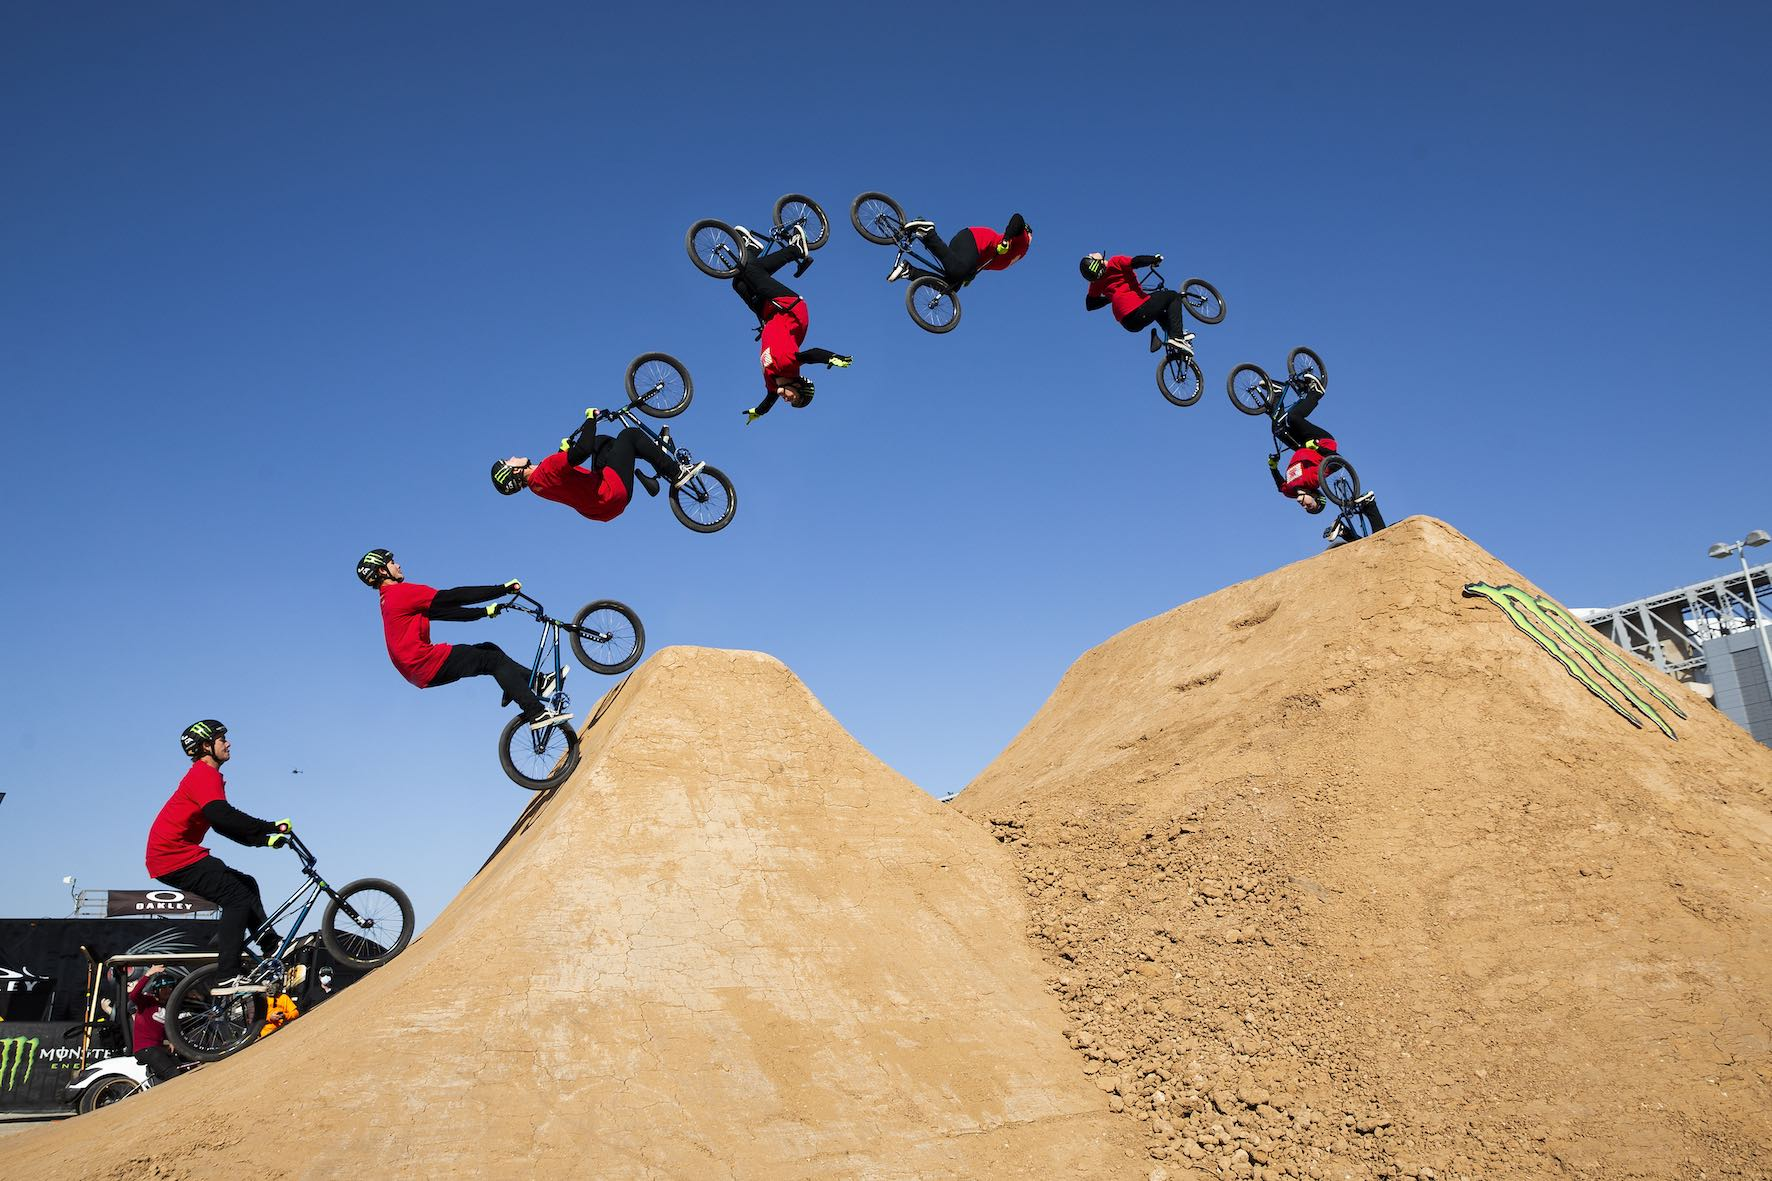 Andy Buckworth riding in the Monster Energy BMX Triple Challenge Dirt Competition